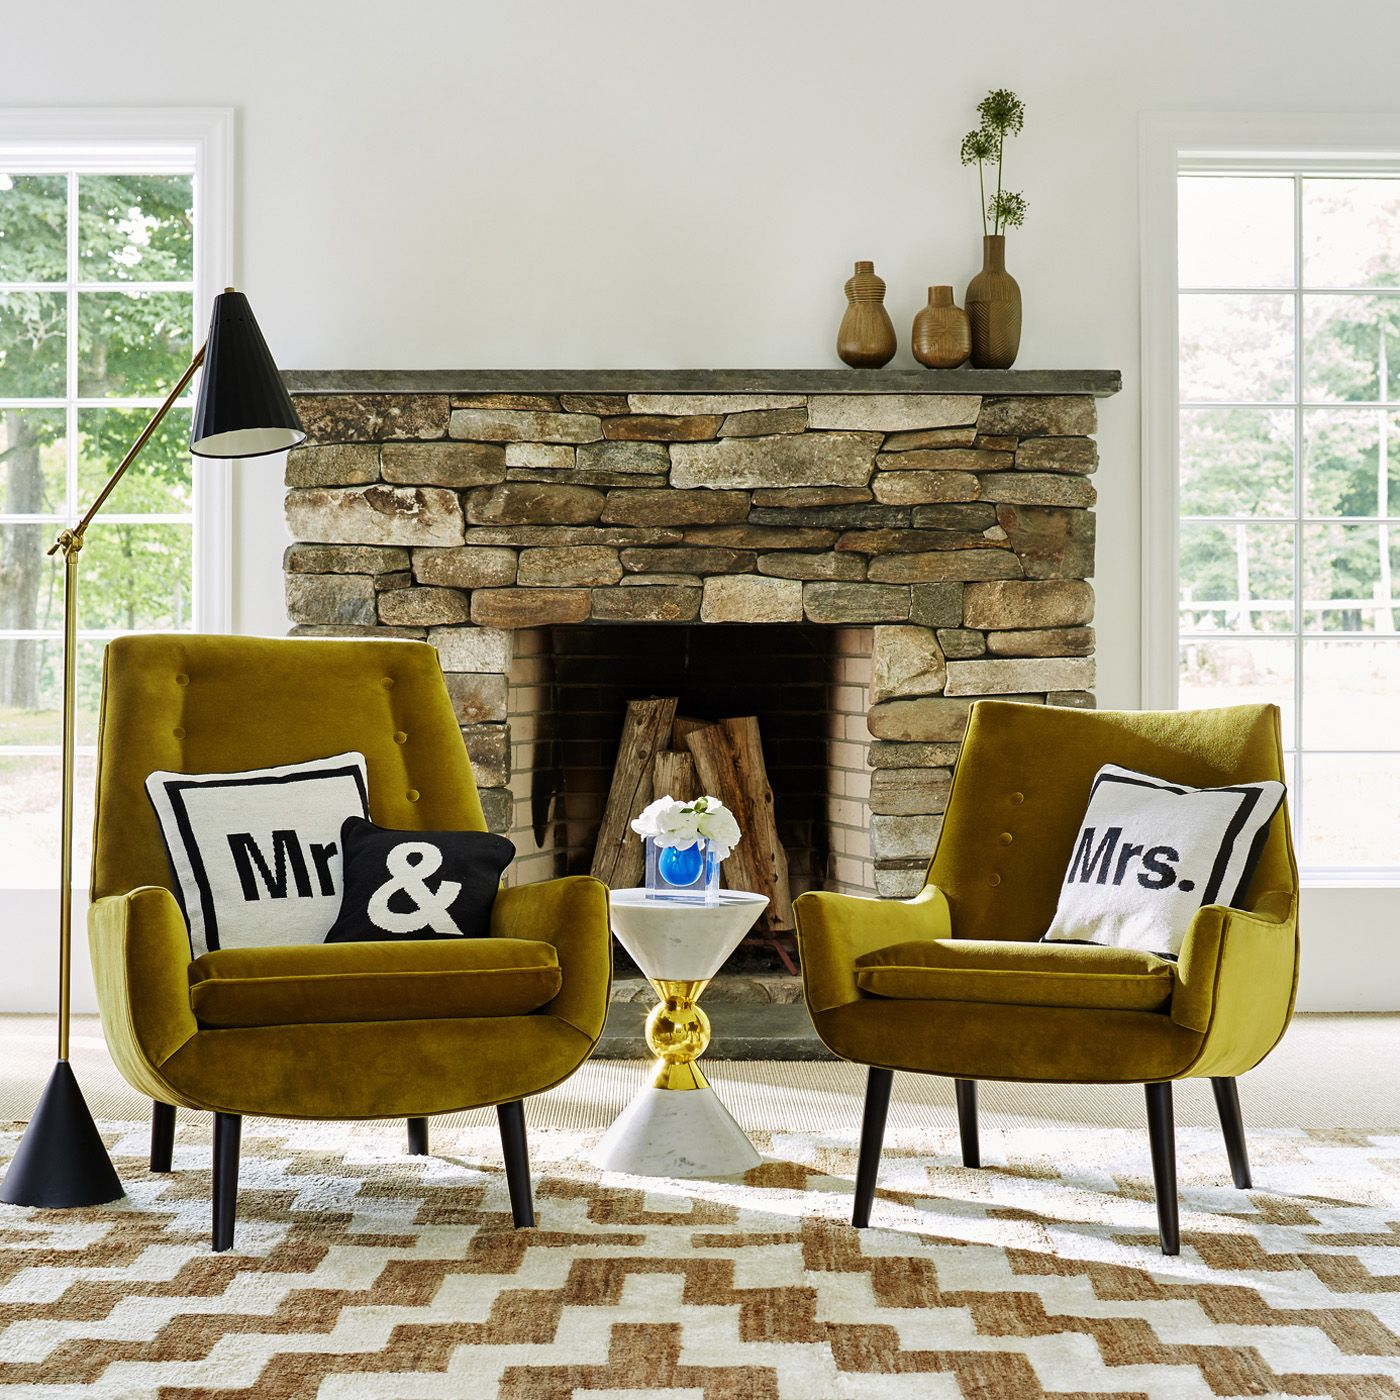 Designer Chairs For Living Room Inspiration 25 Bold Living Room Chairs You Will Want This Spring  Modern 2018